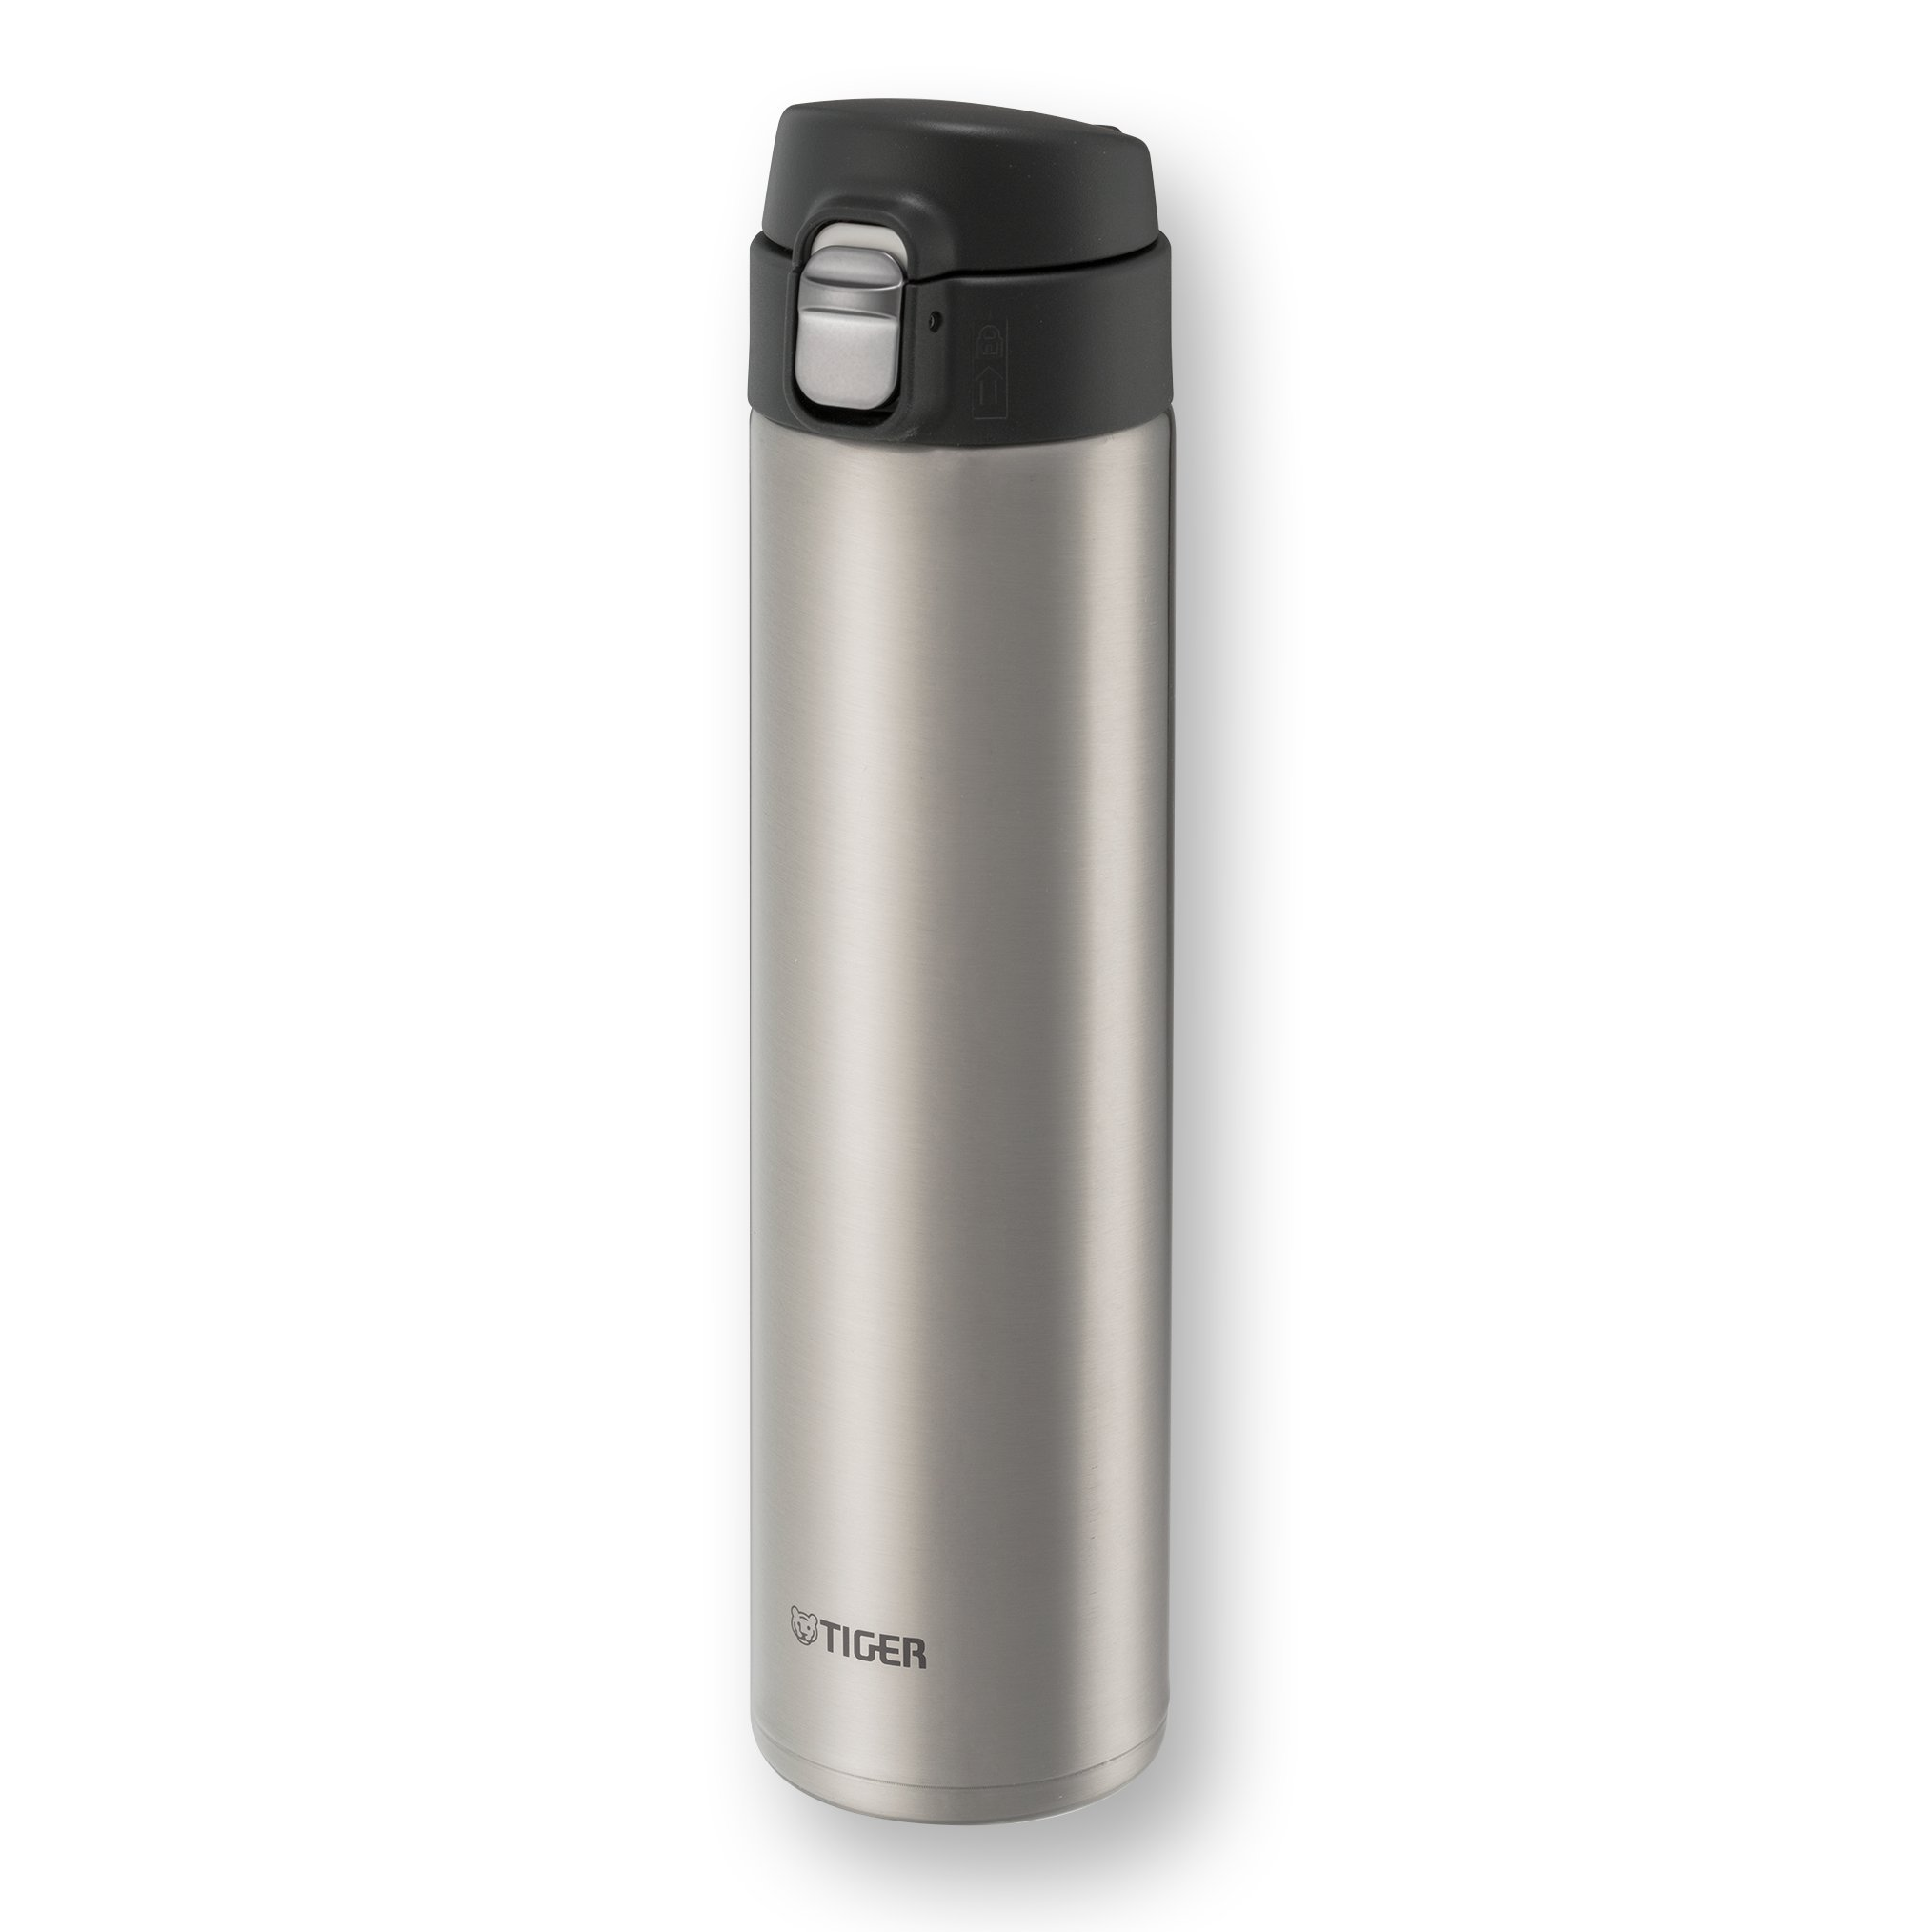 Tiger MMJ-A060 XC Vacuum Insulated Stainless Steel Travel Mug with Flip Open Lid, Double Wall, 20 Oz, Silver